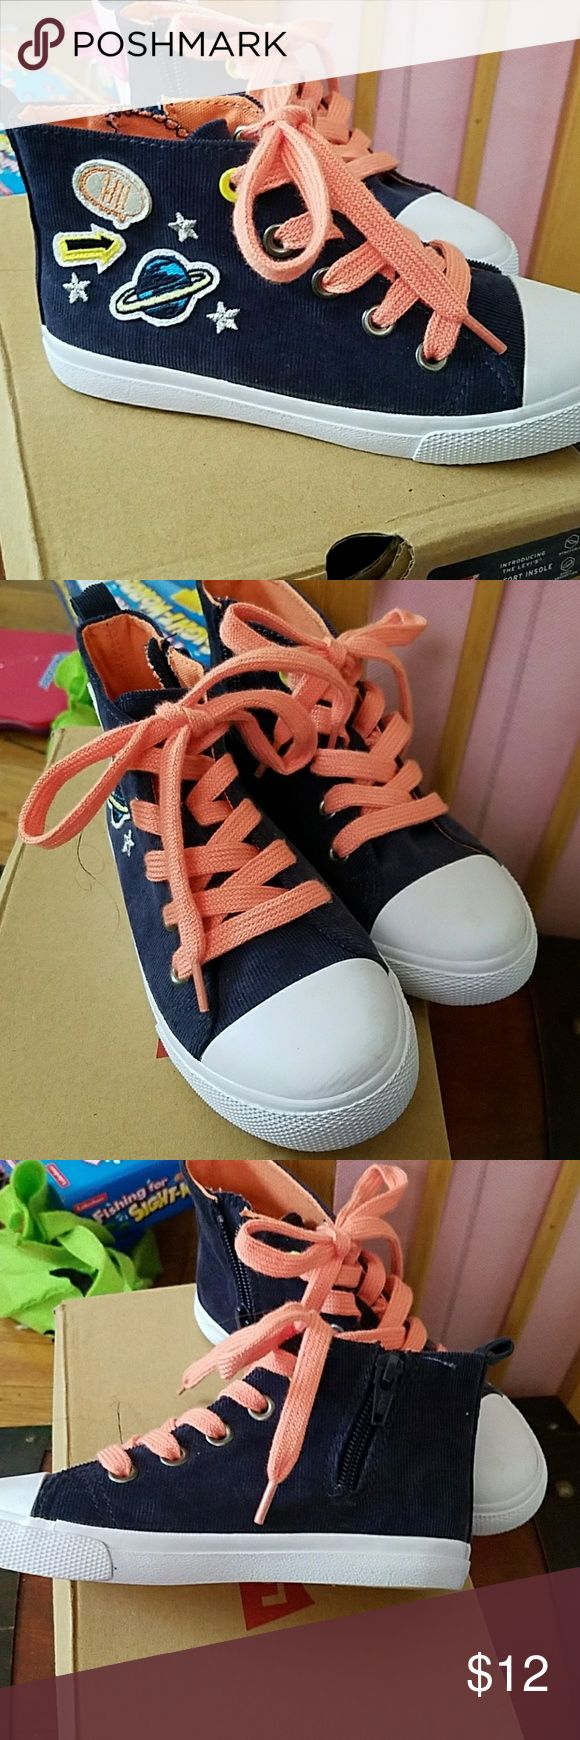 Cat & Jack high top tennis shoes Brand new with out box, never worn.Cat&Jack size 11. Lace and side zip. Cat & Jack Shoes Sneakers